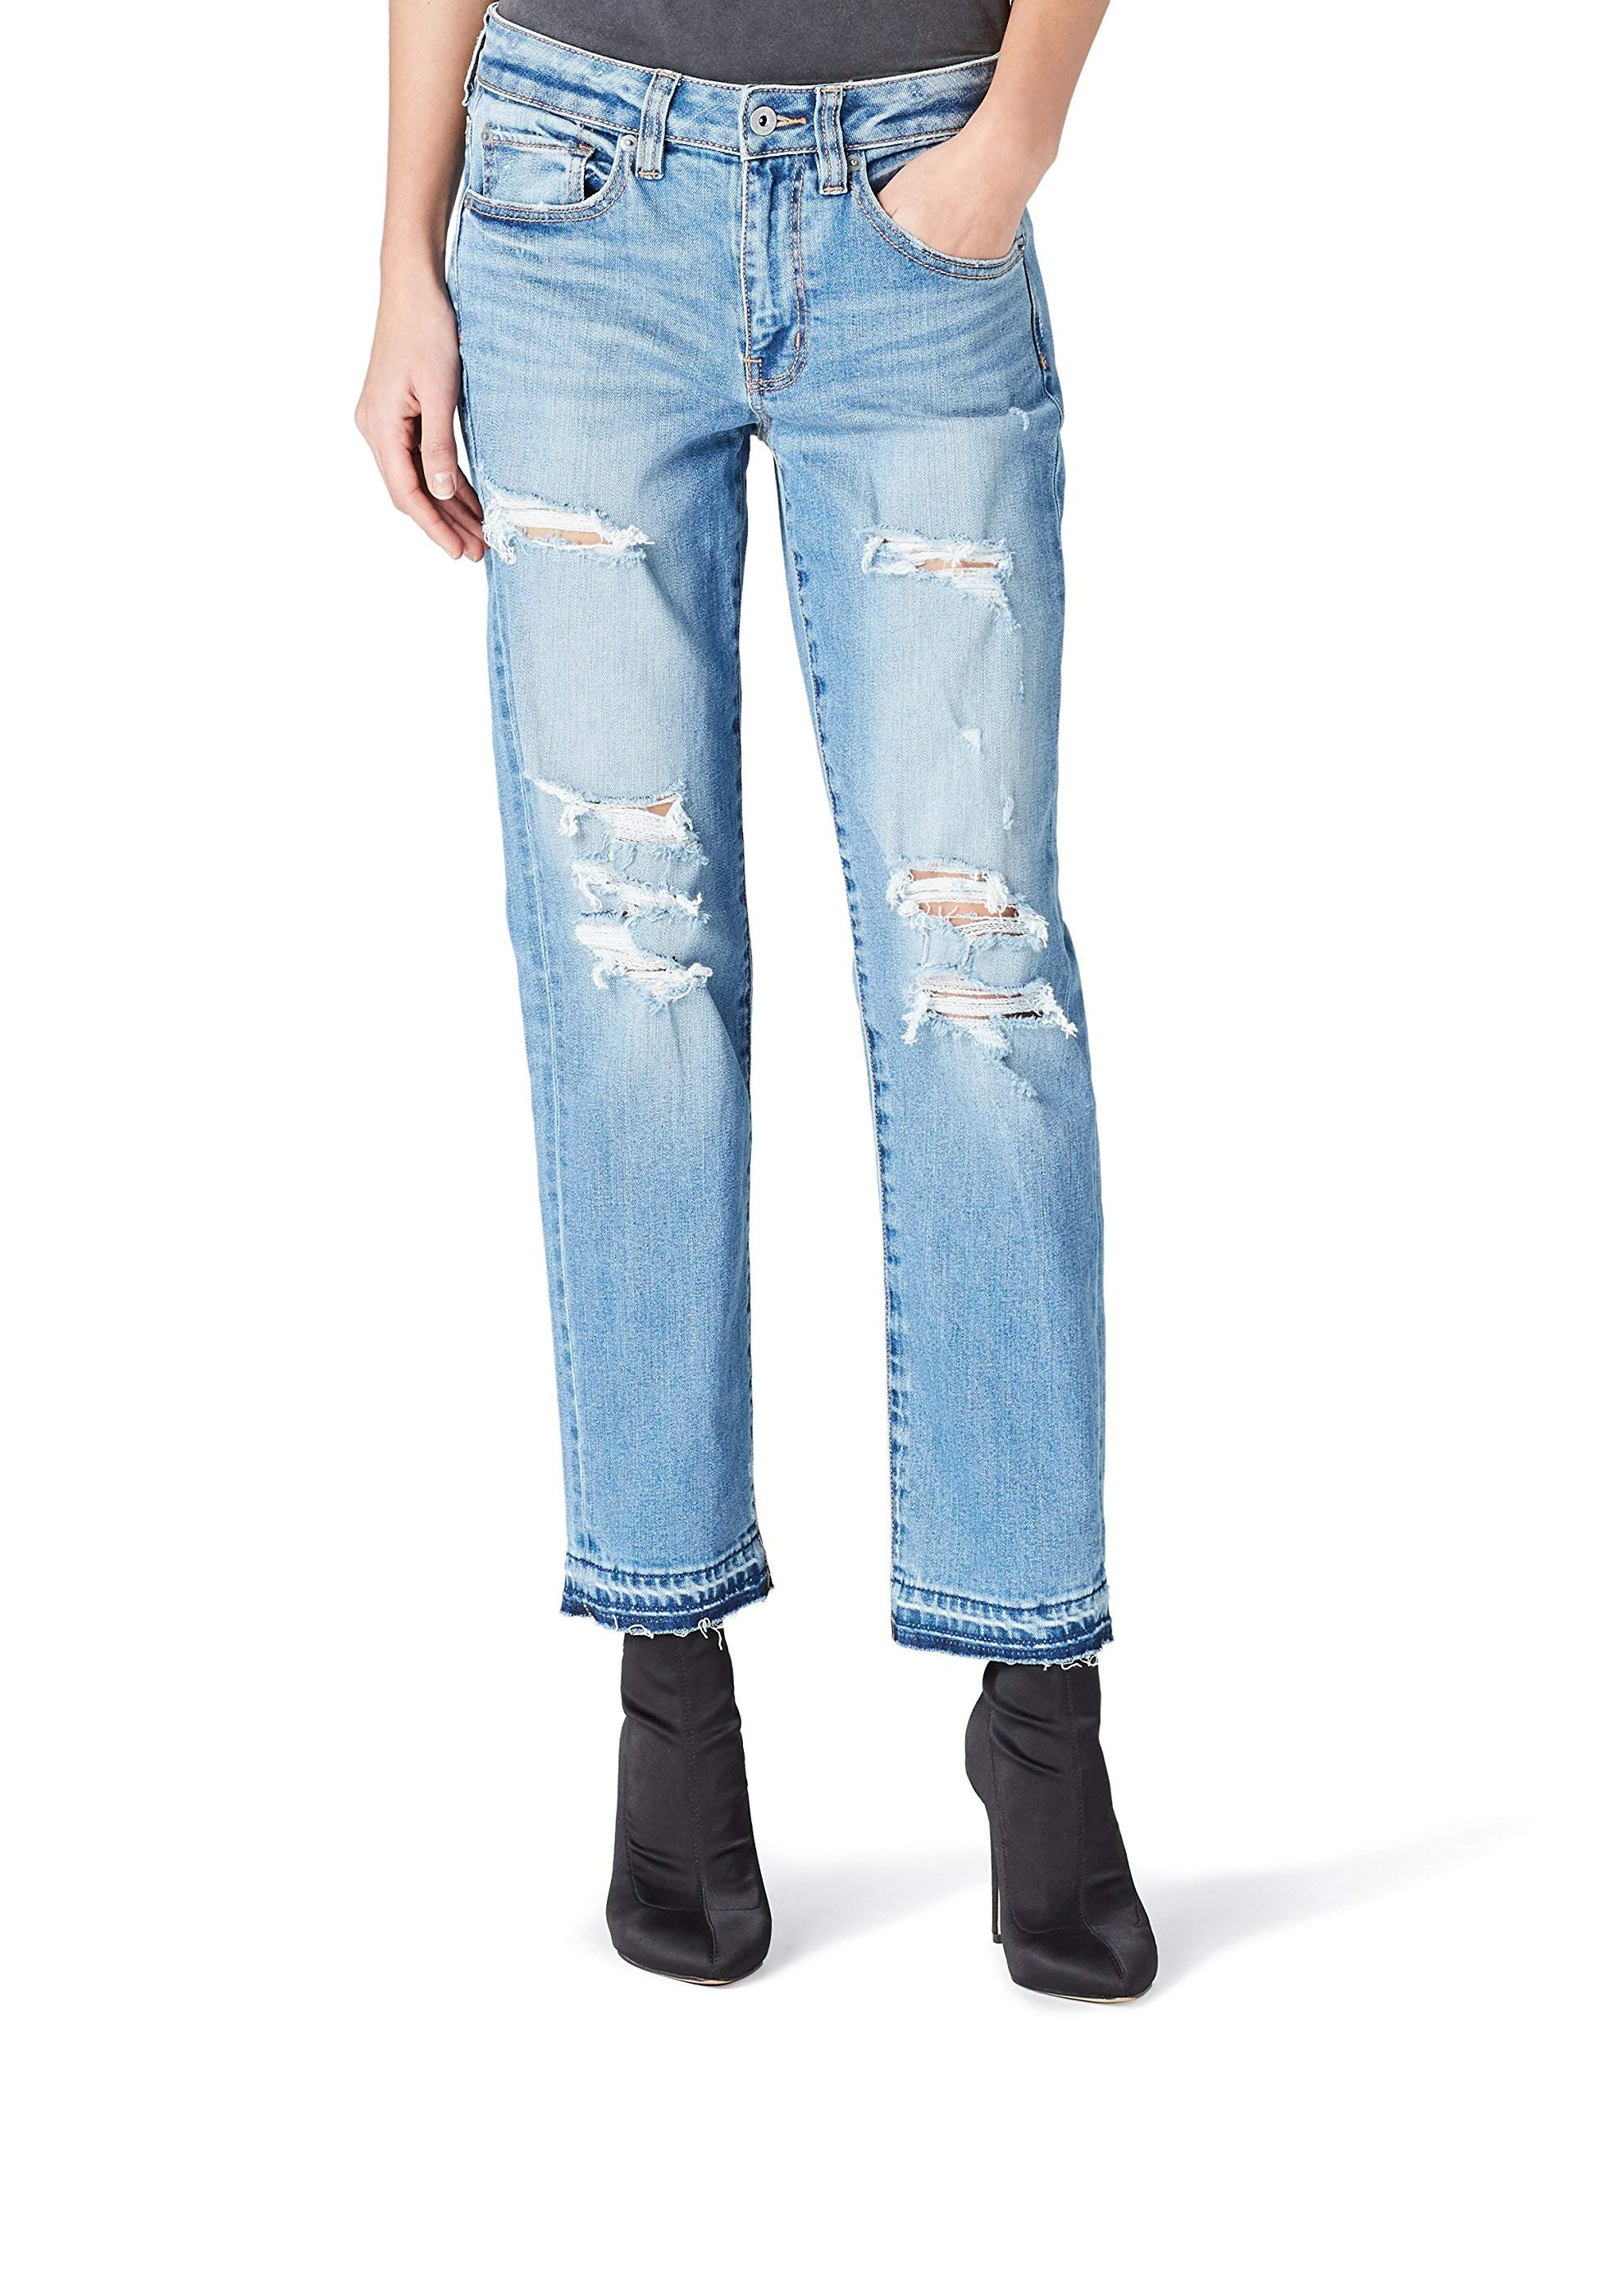 0113557a Women's Jeans: Amazon.co.uk